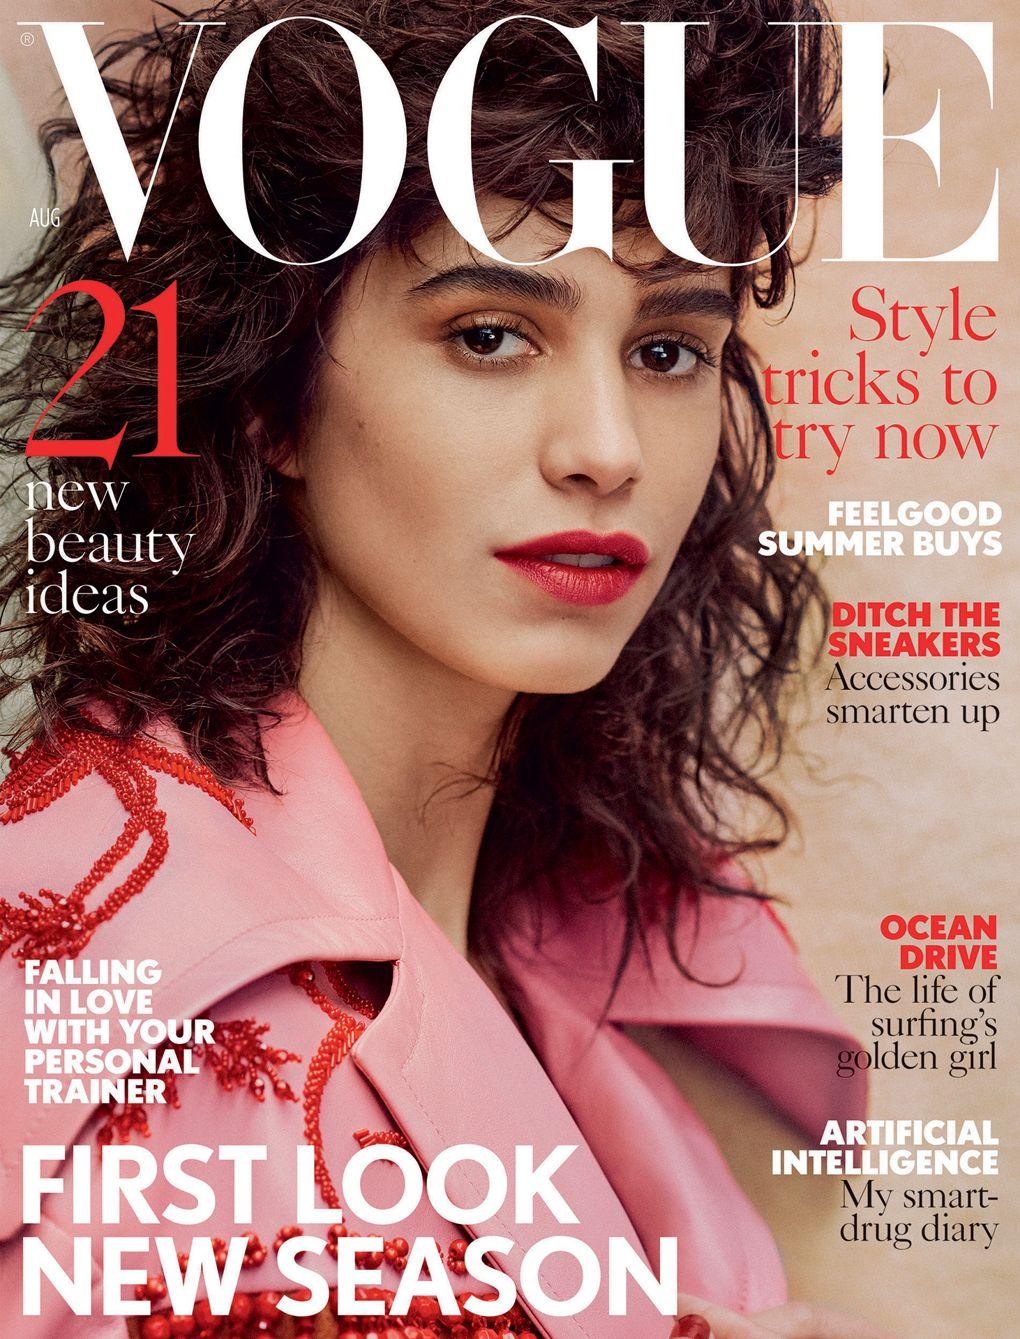 Mica Argañaraz Covers British Vogue Magazine August 2017